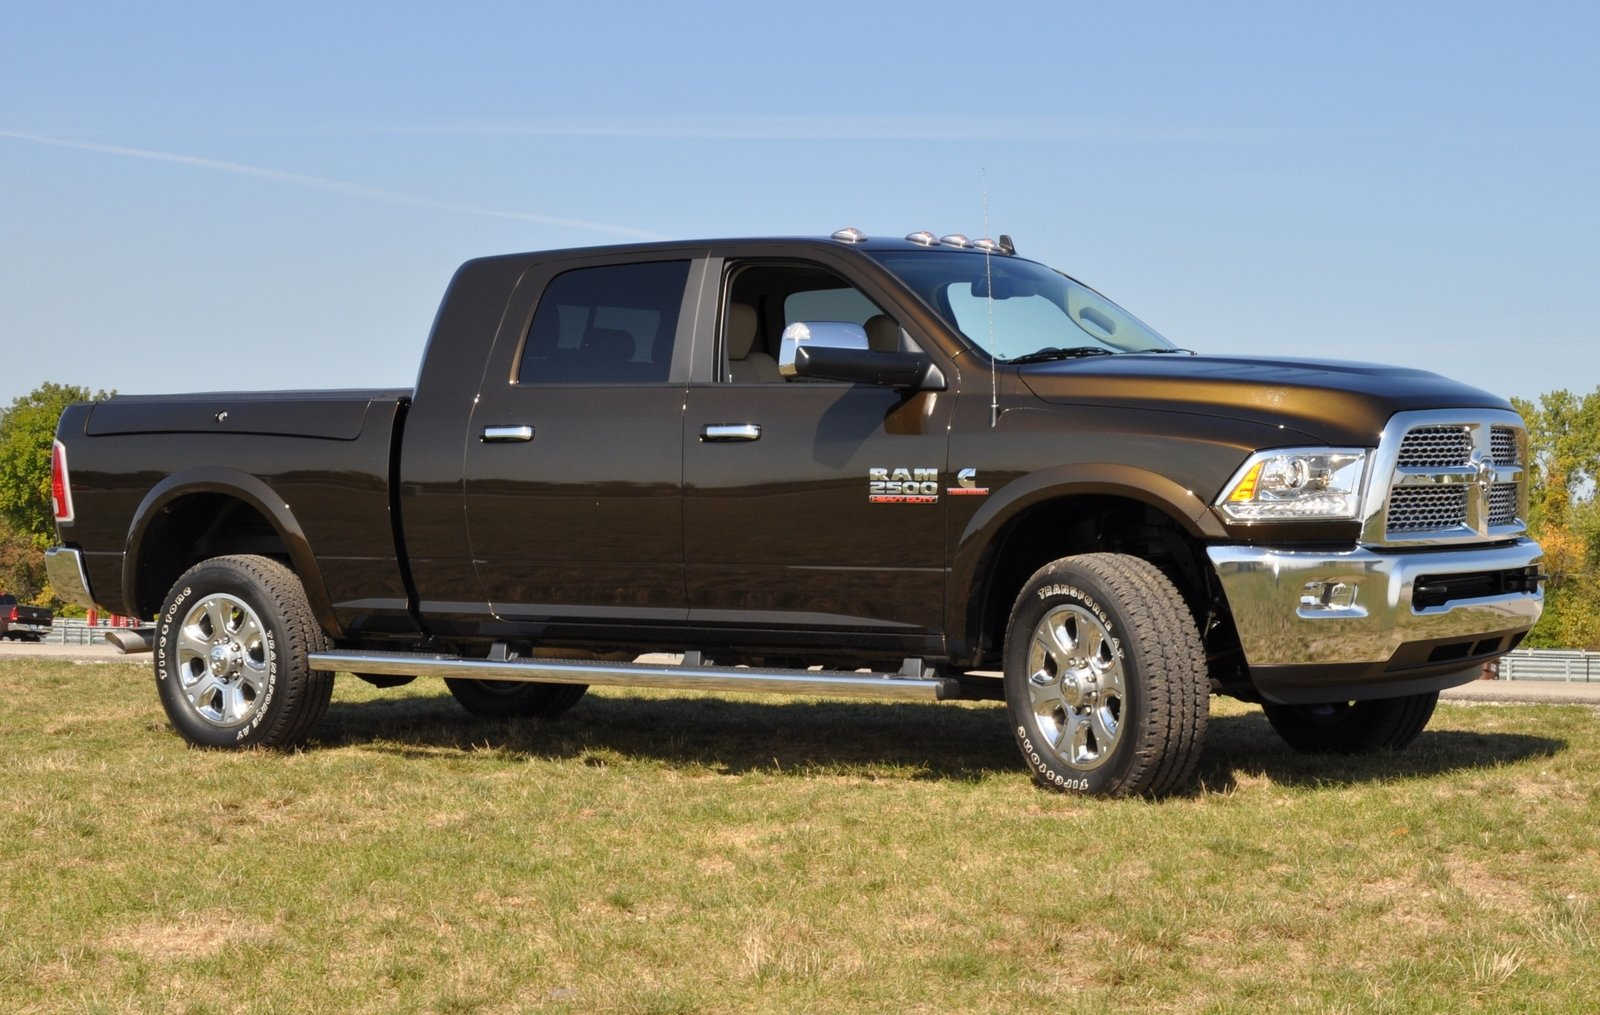 2014 ram 2500hd cummins driven picture 529486 car review top speed. Black Bedroom Furniture Sets. Home Design Ideas